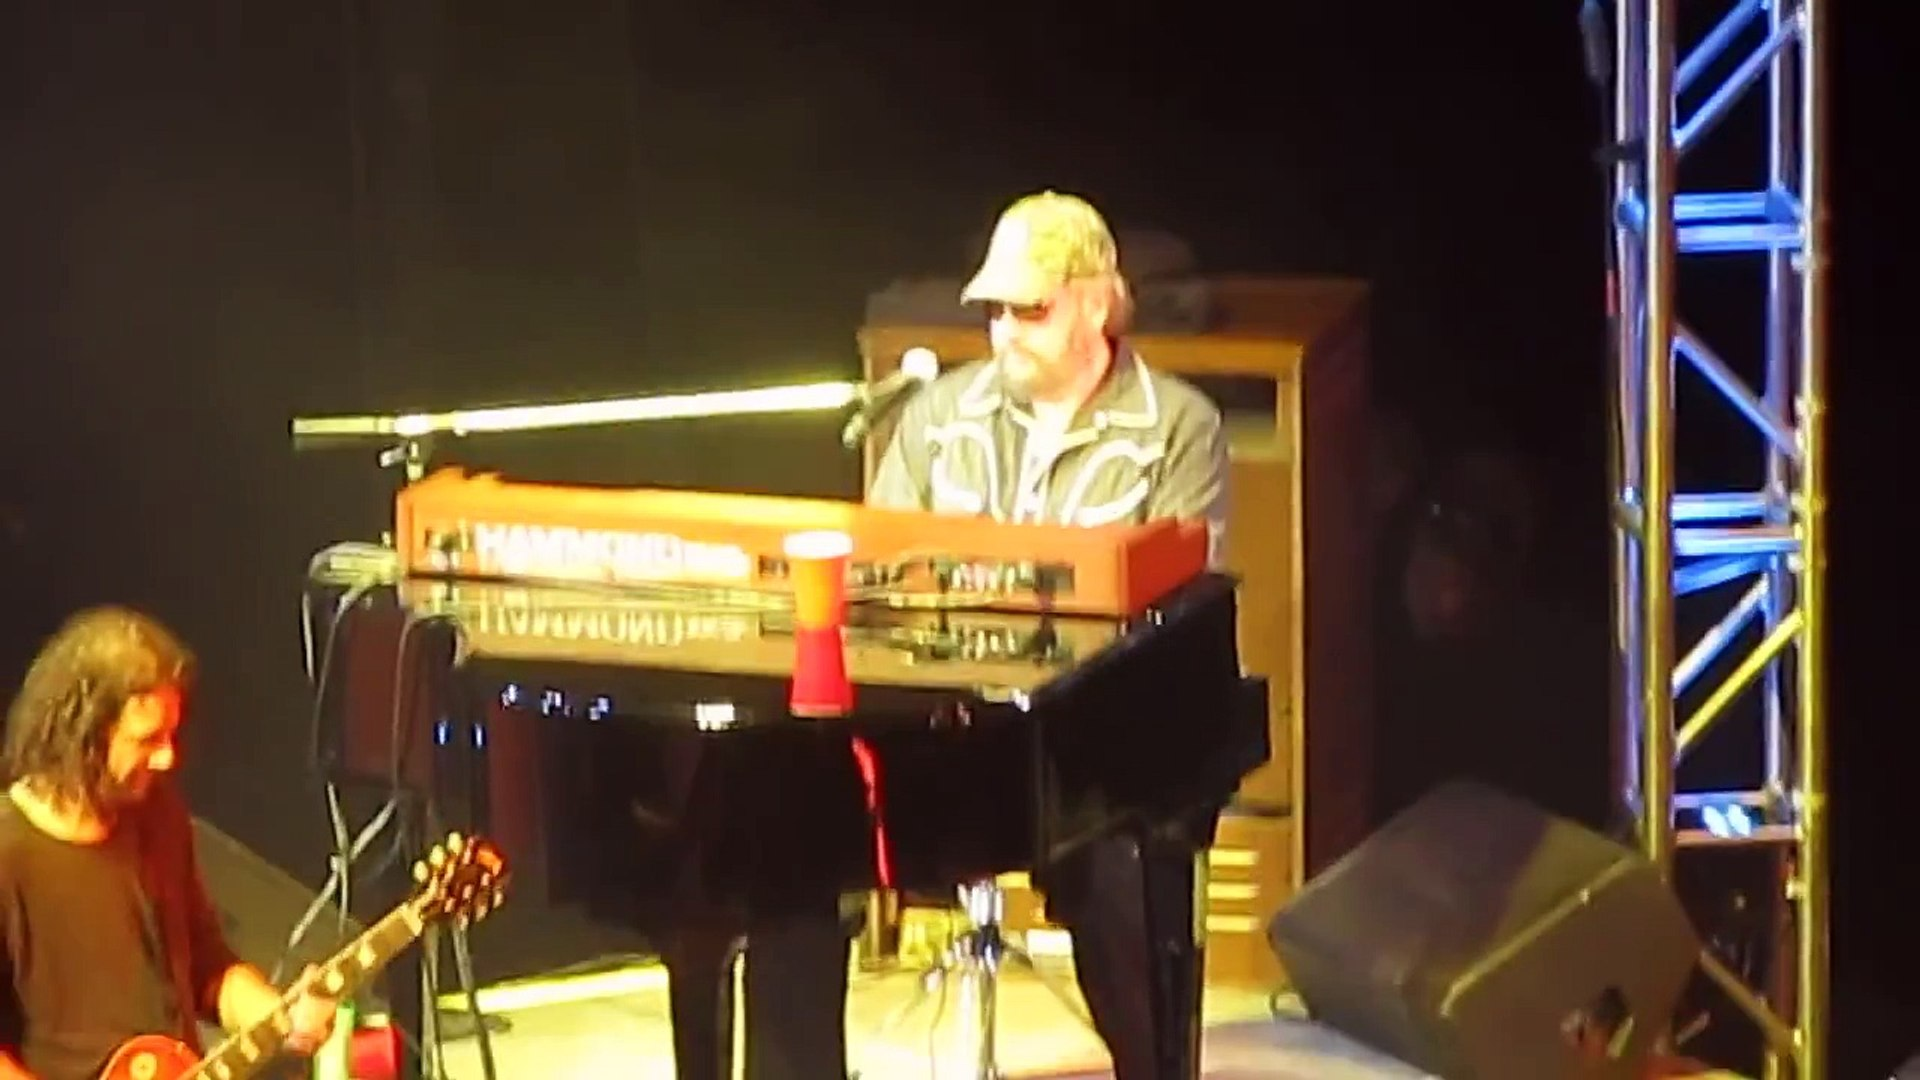 Hank Williams Jr Live 4-27-2012 Playing Piano in style of Jerry Lee Lewis